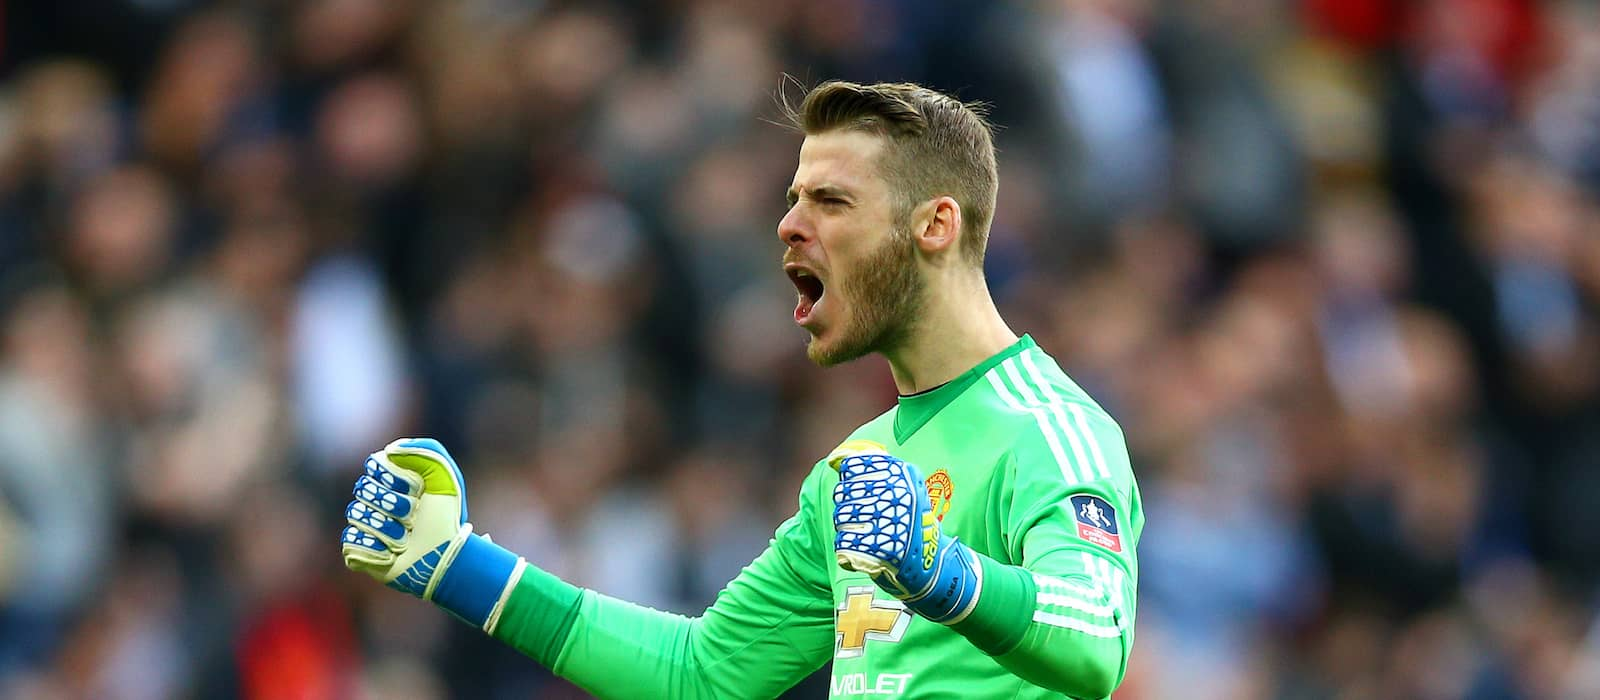 Fans left amazed with David de Gea's performance against Liverpool